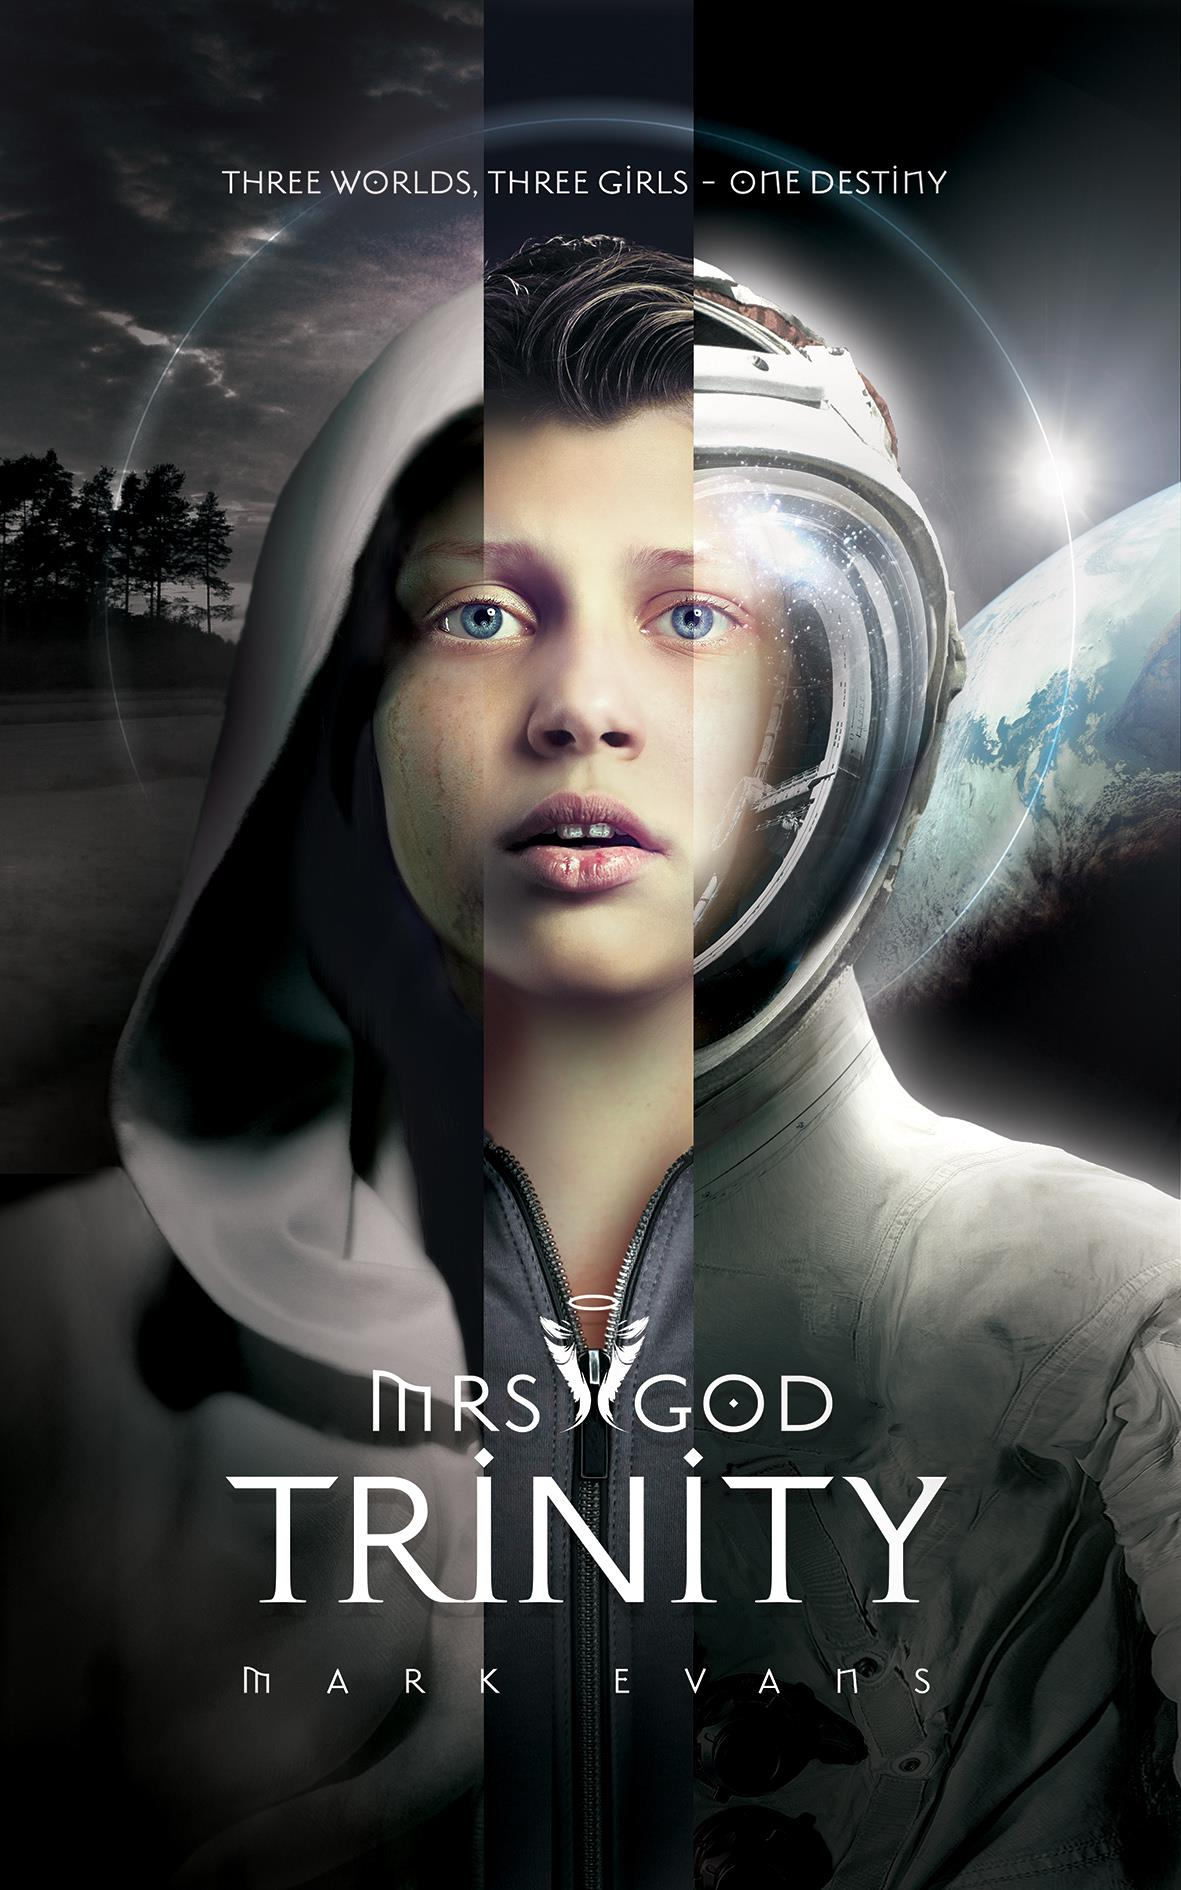 Mrs God Trinity Book Cover design  - Mark Evans